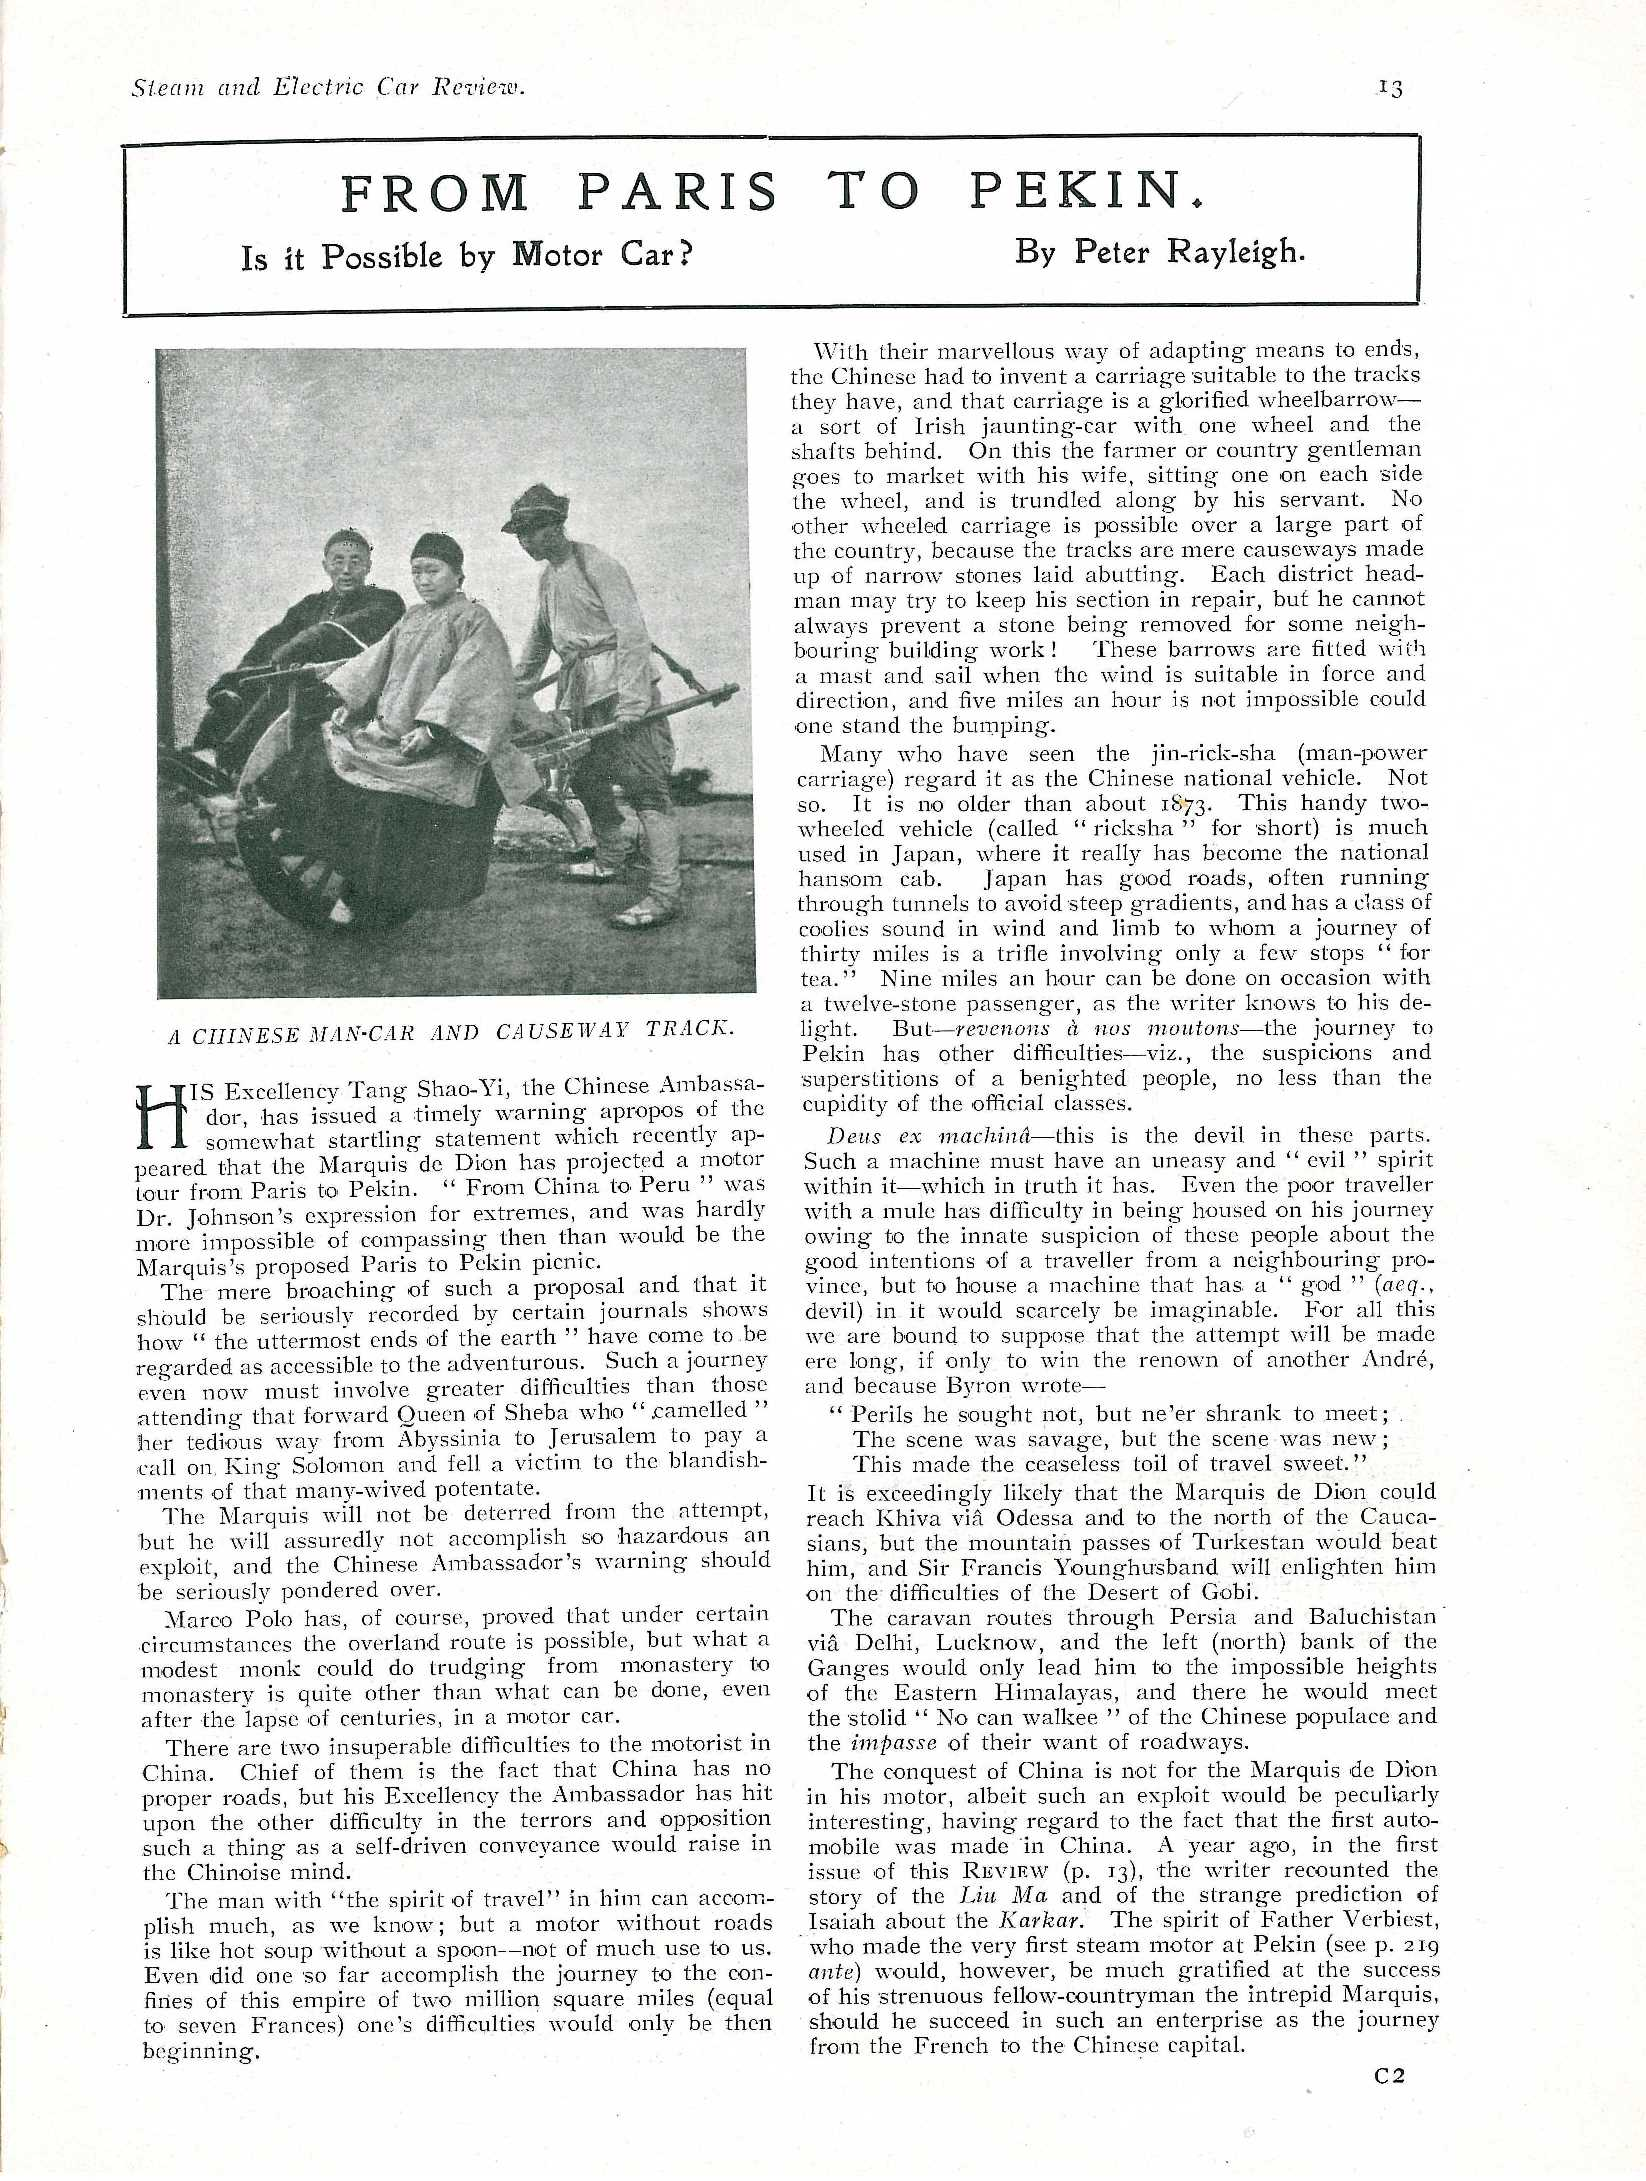 Steam and Electric Car Review - Feb. 1907 small